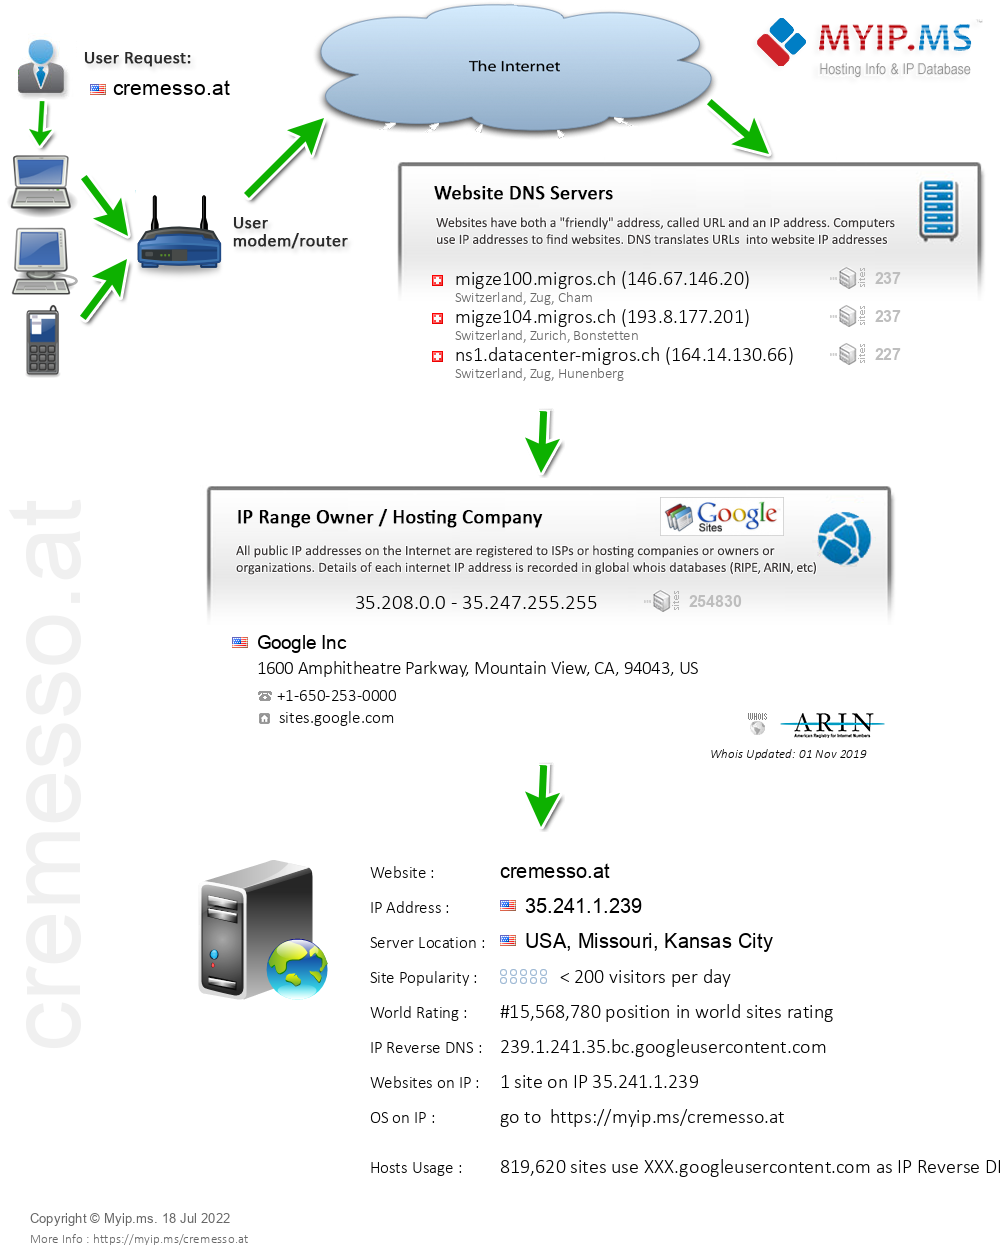 Cremesso.at - Website Hosting Visual IP Diagram